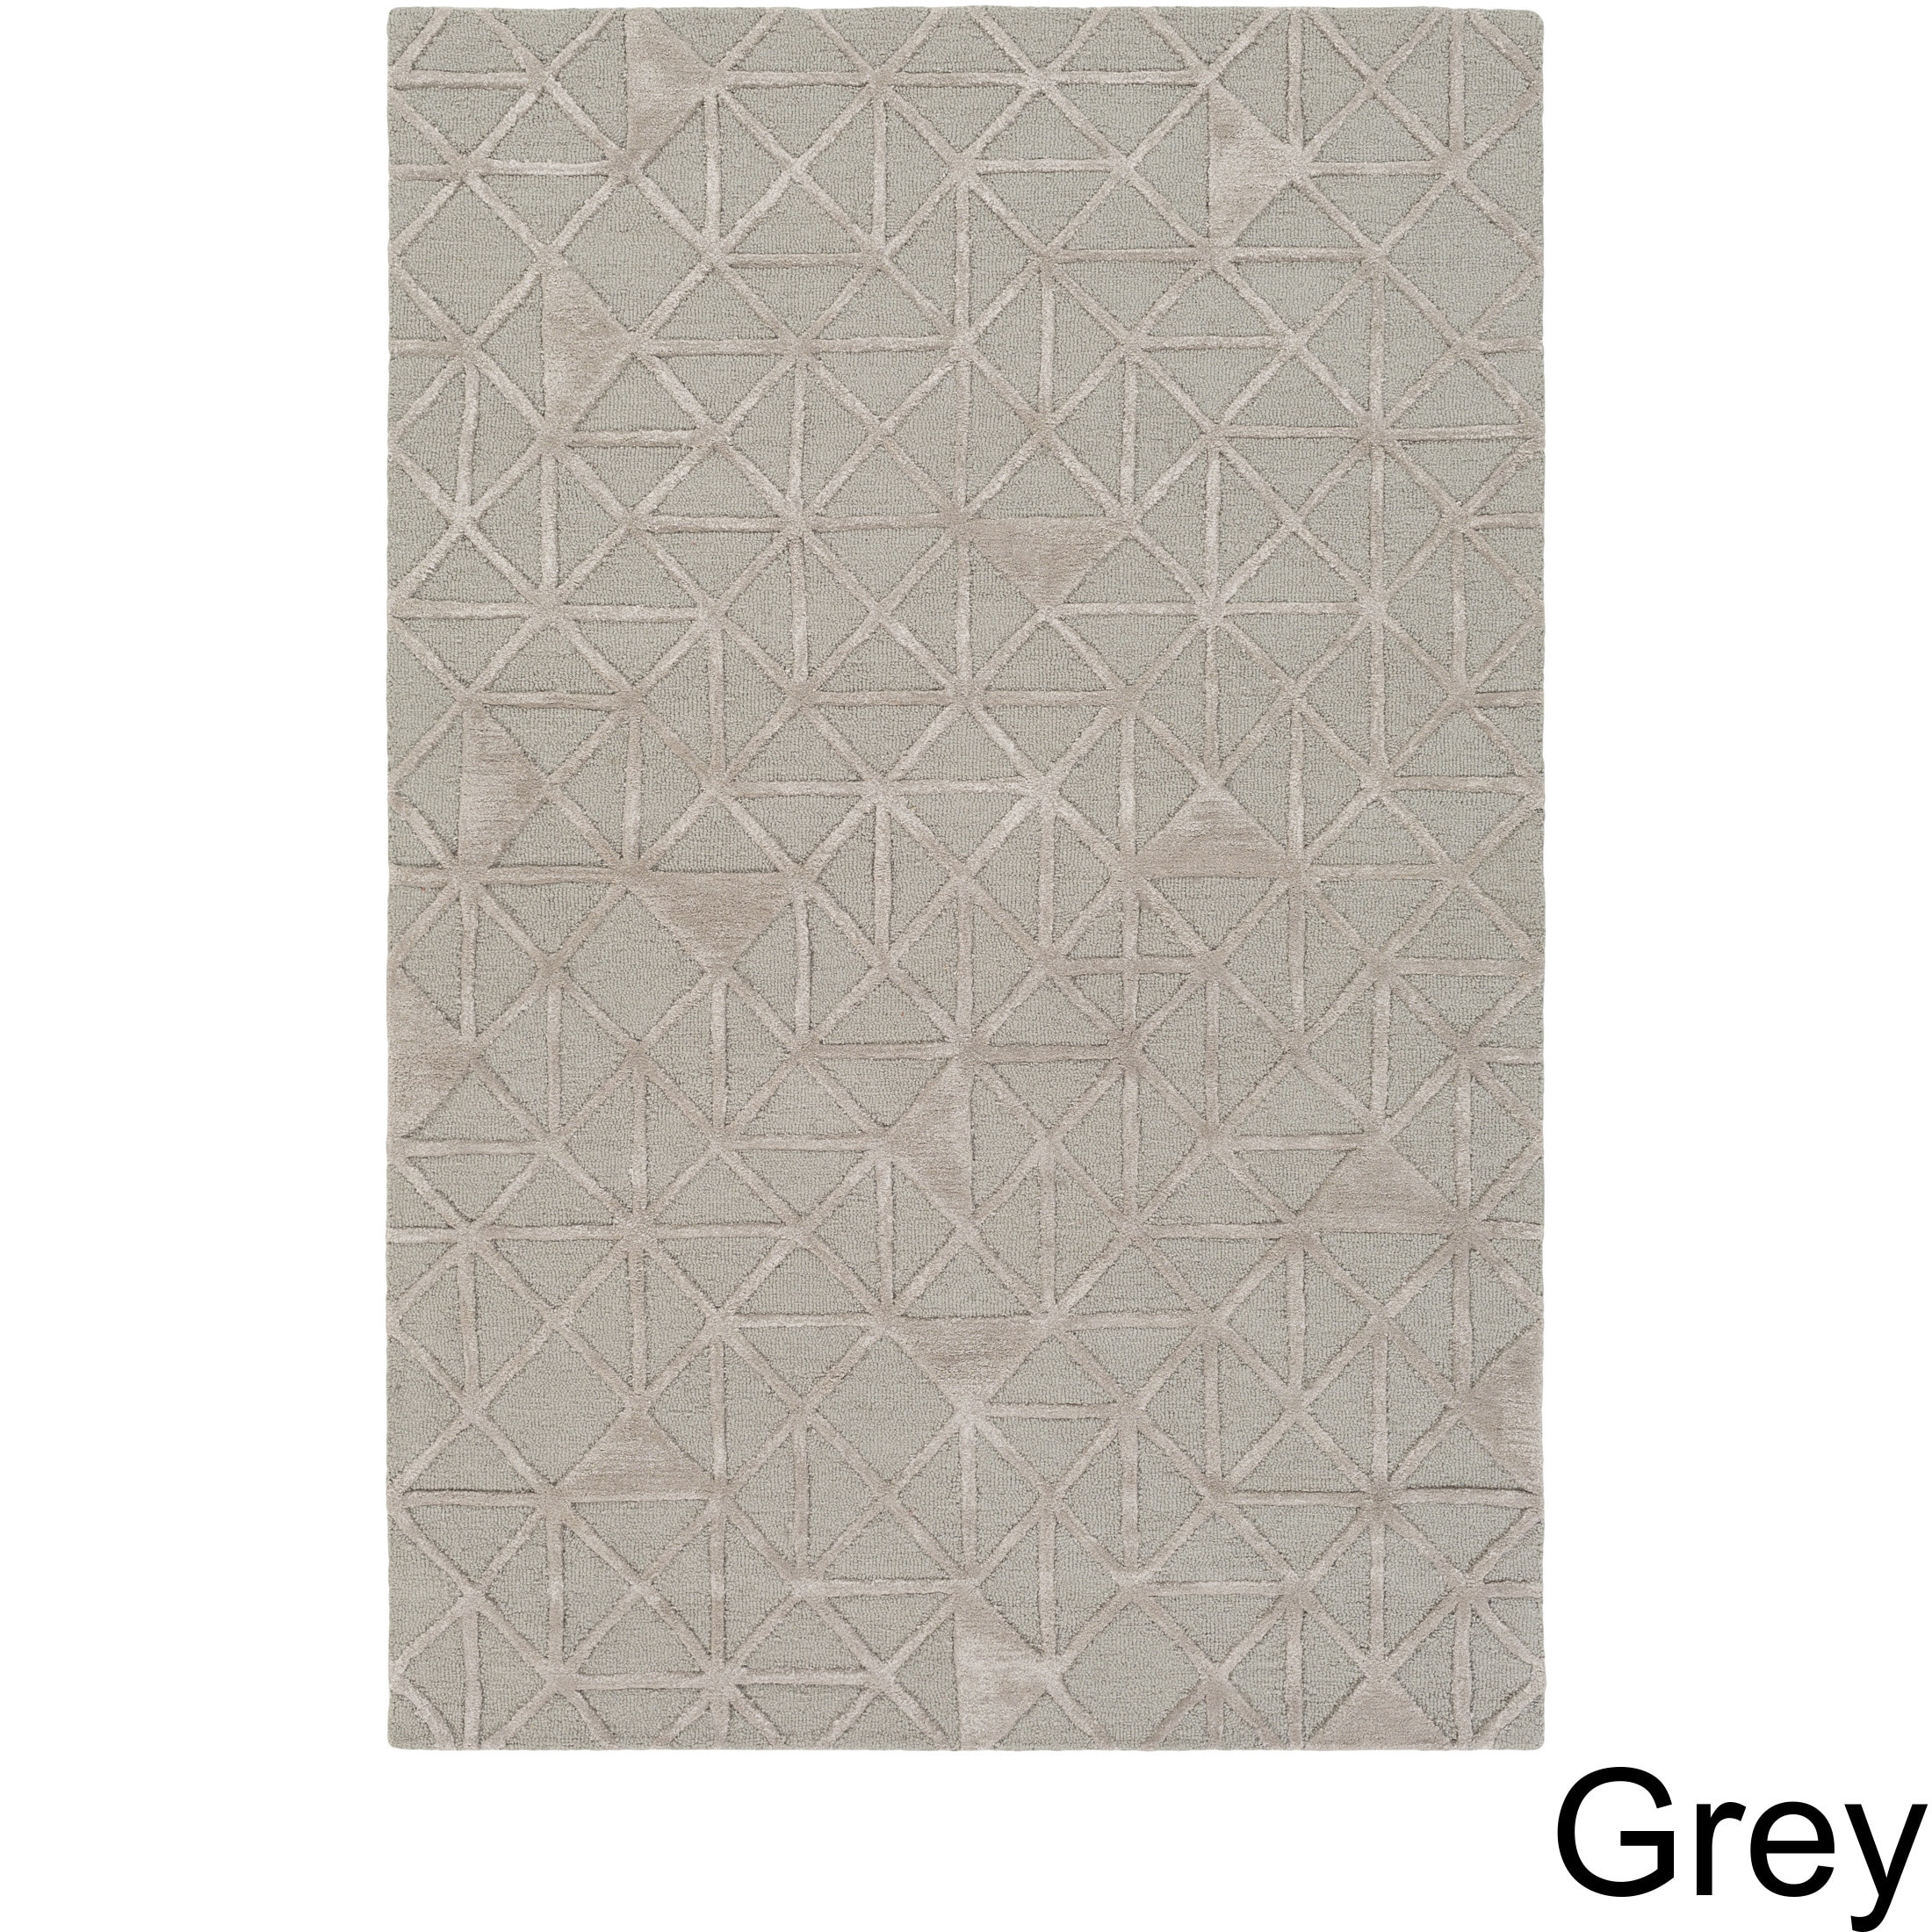 Hand Tufted Dubois Wool Area Rug 5 X 7 6 Grey Taupe Size 5